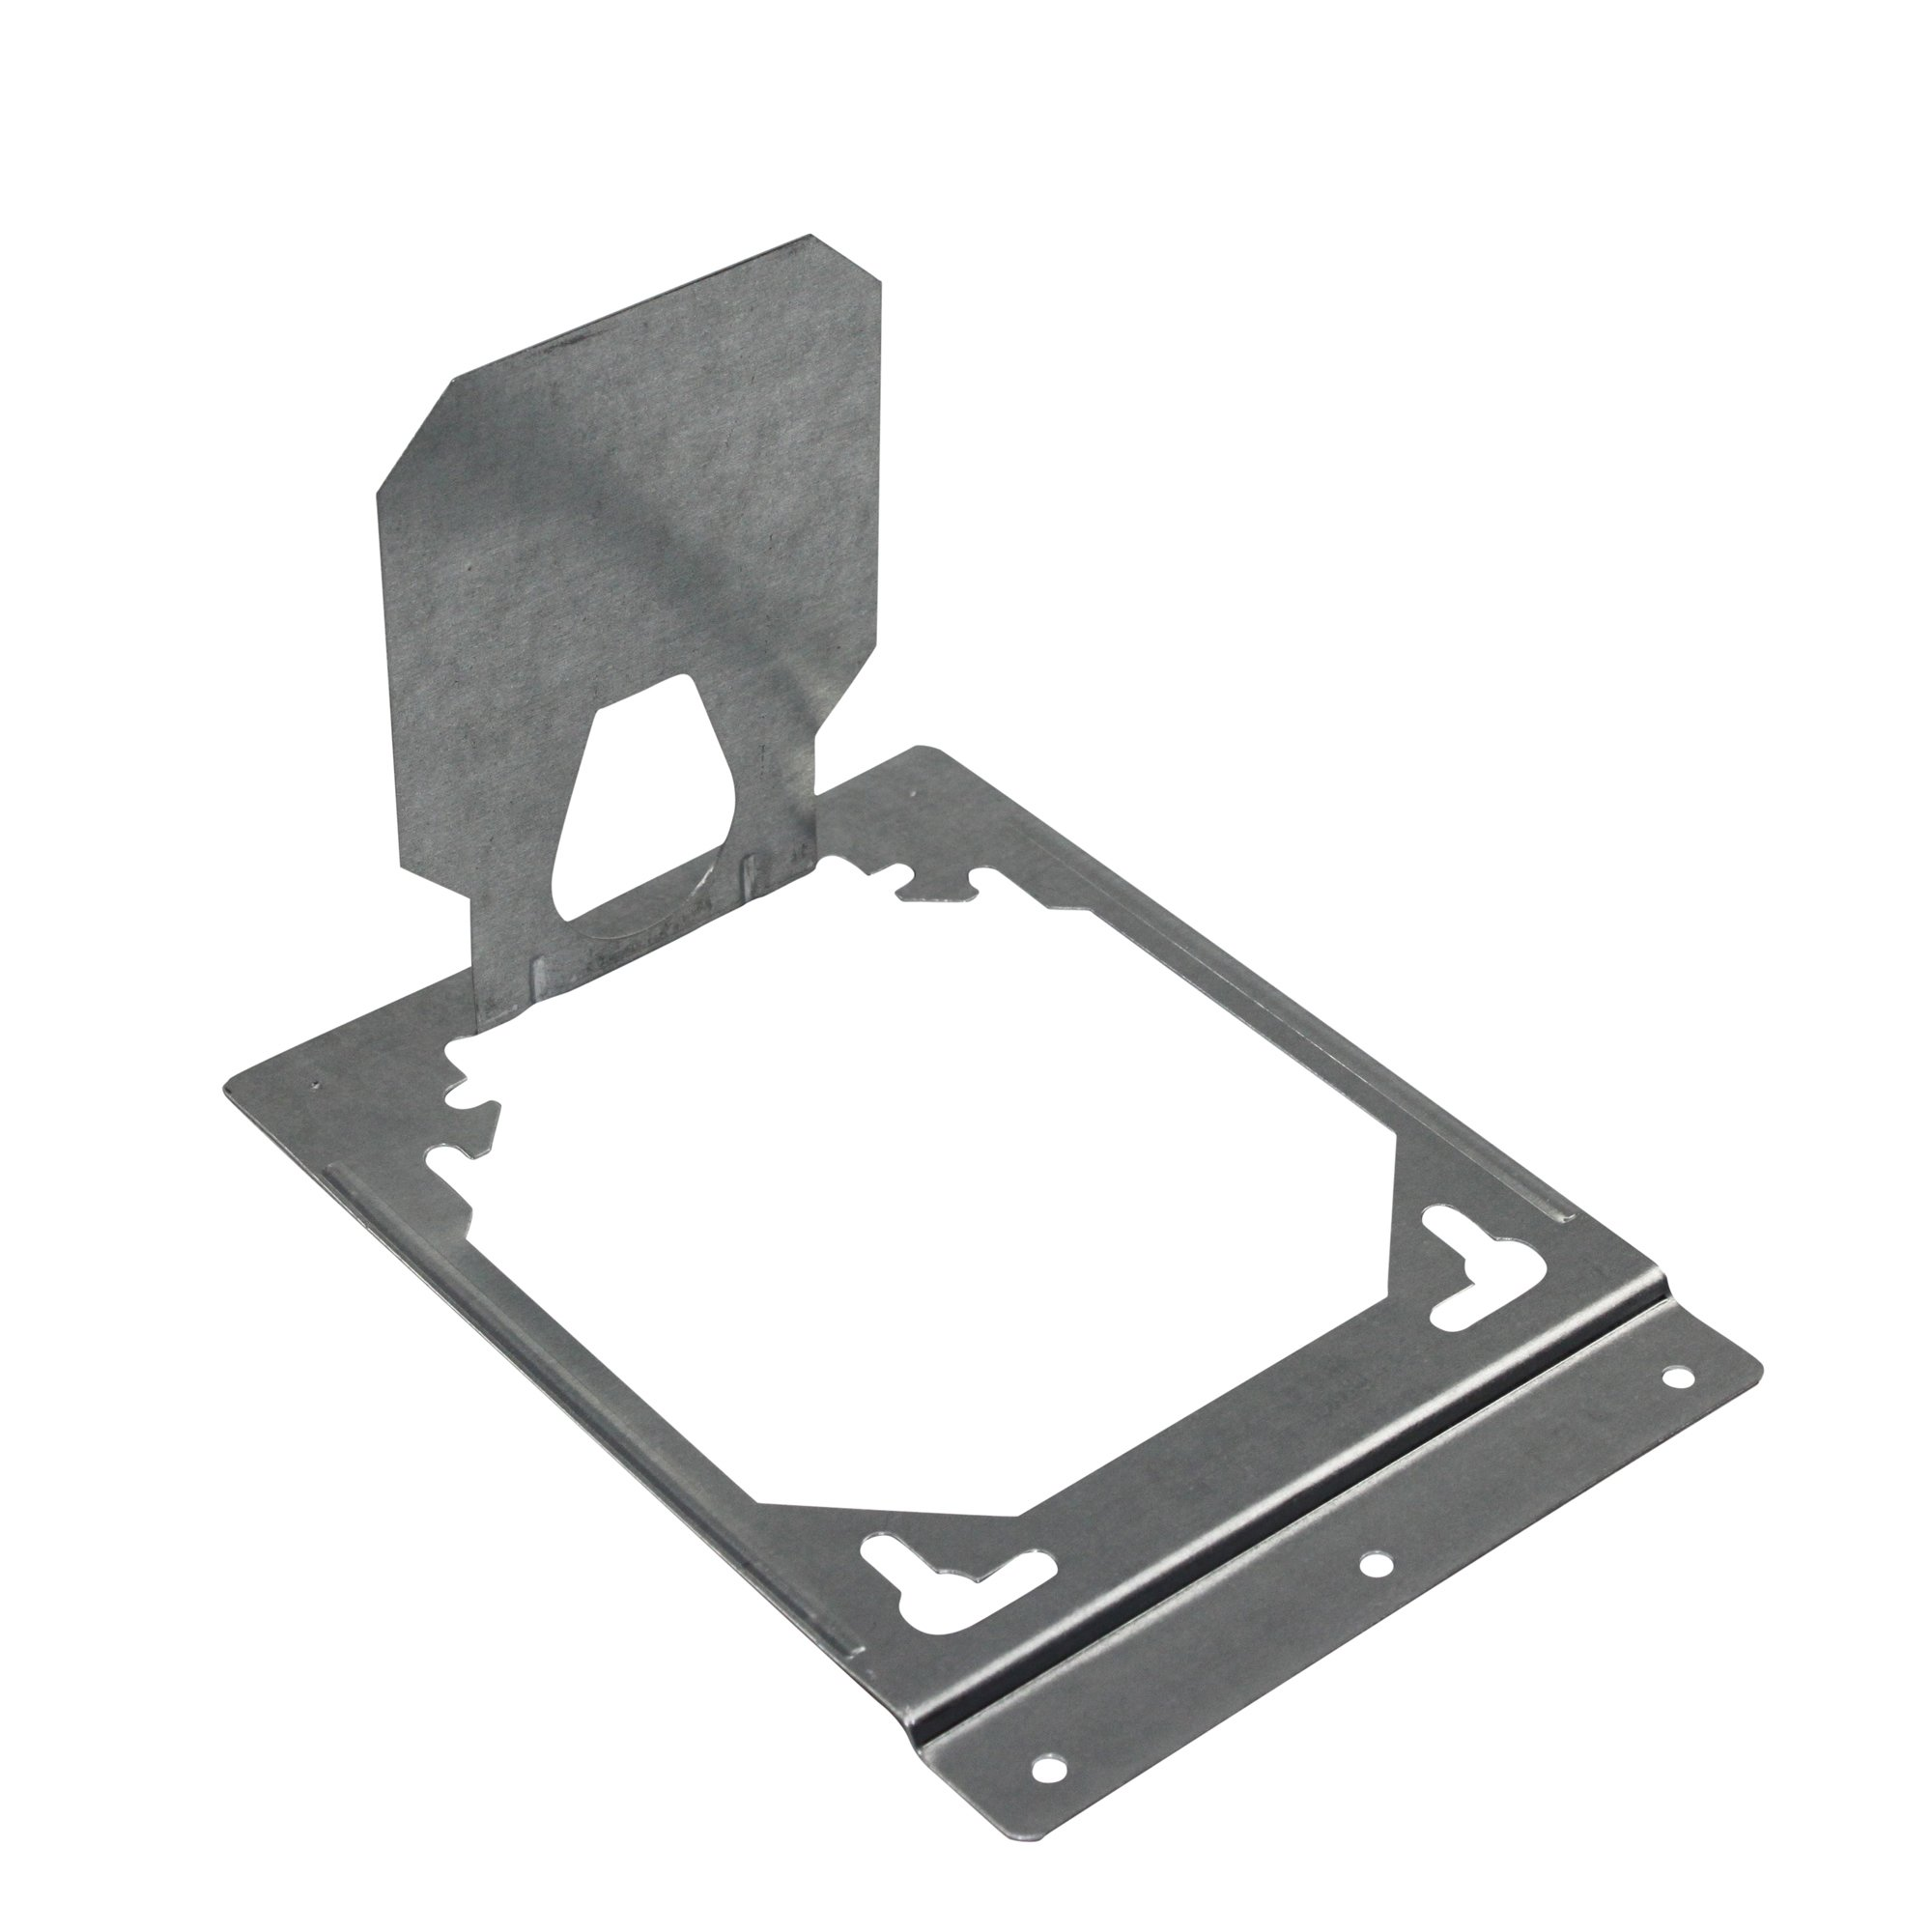 Steel City Ssf-Sh4 Box Mounting Bracket Fits 4'' Or 4-11/16'' Outlet Boxes Fits 4'' Metal Studs (Box Of